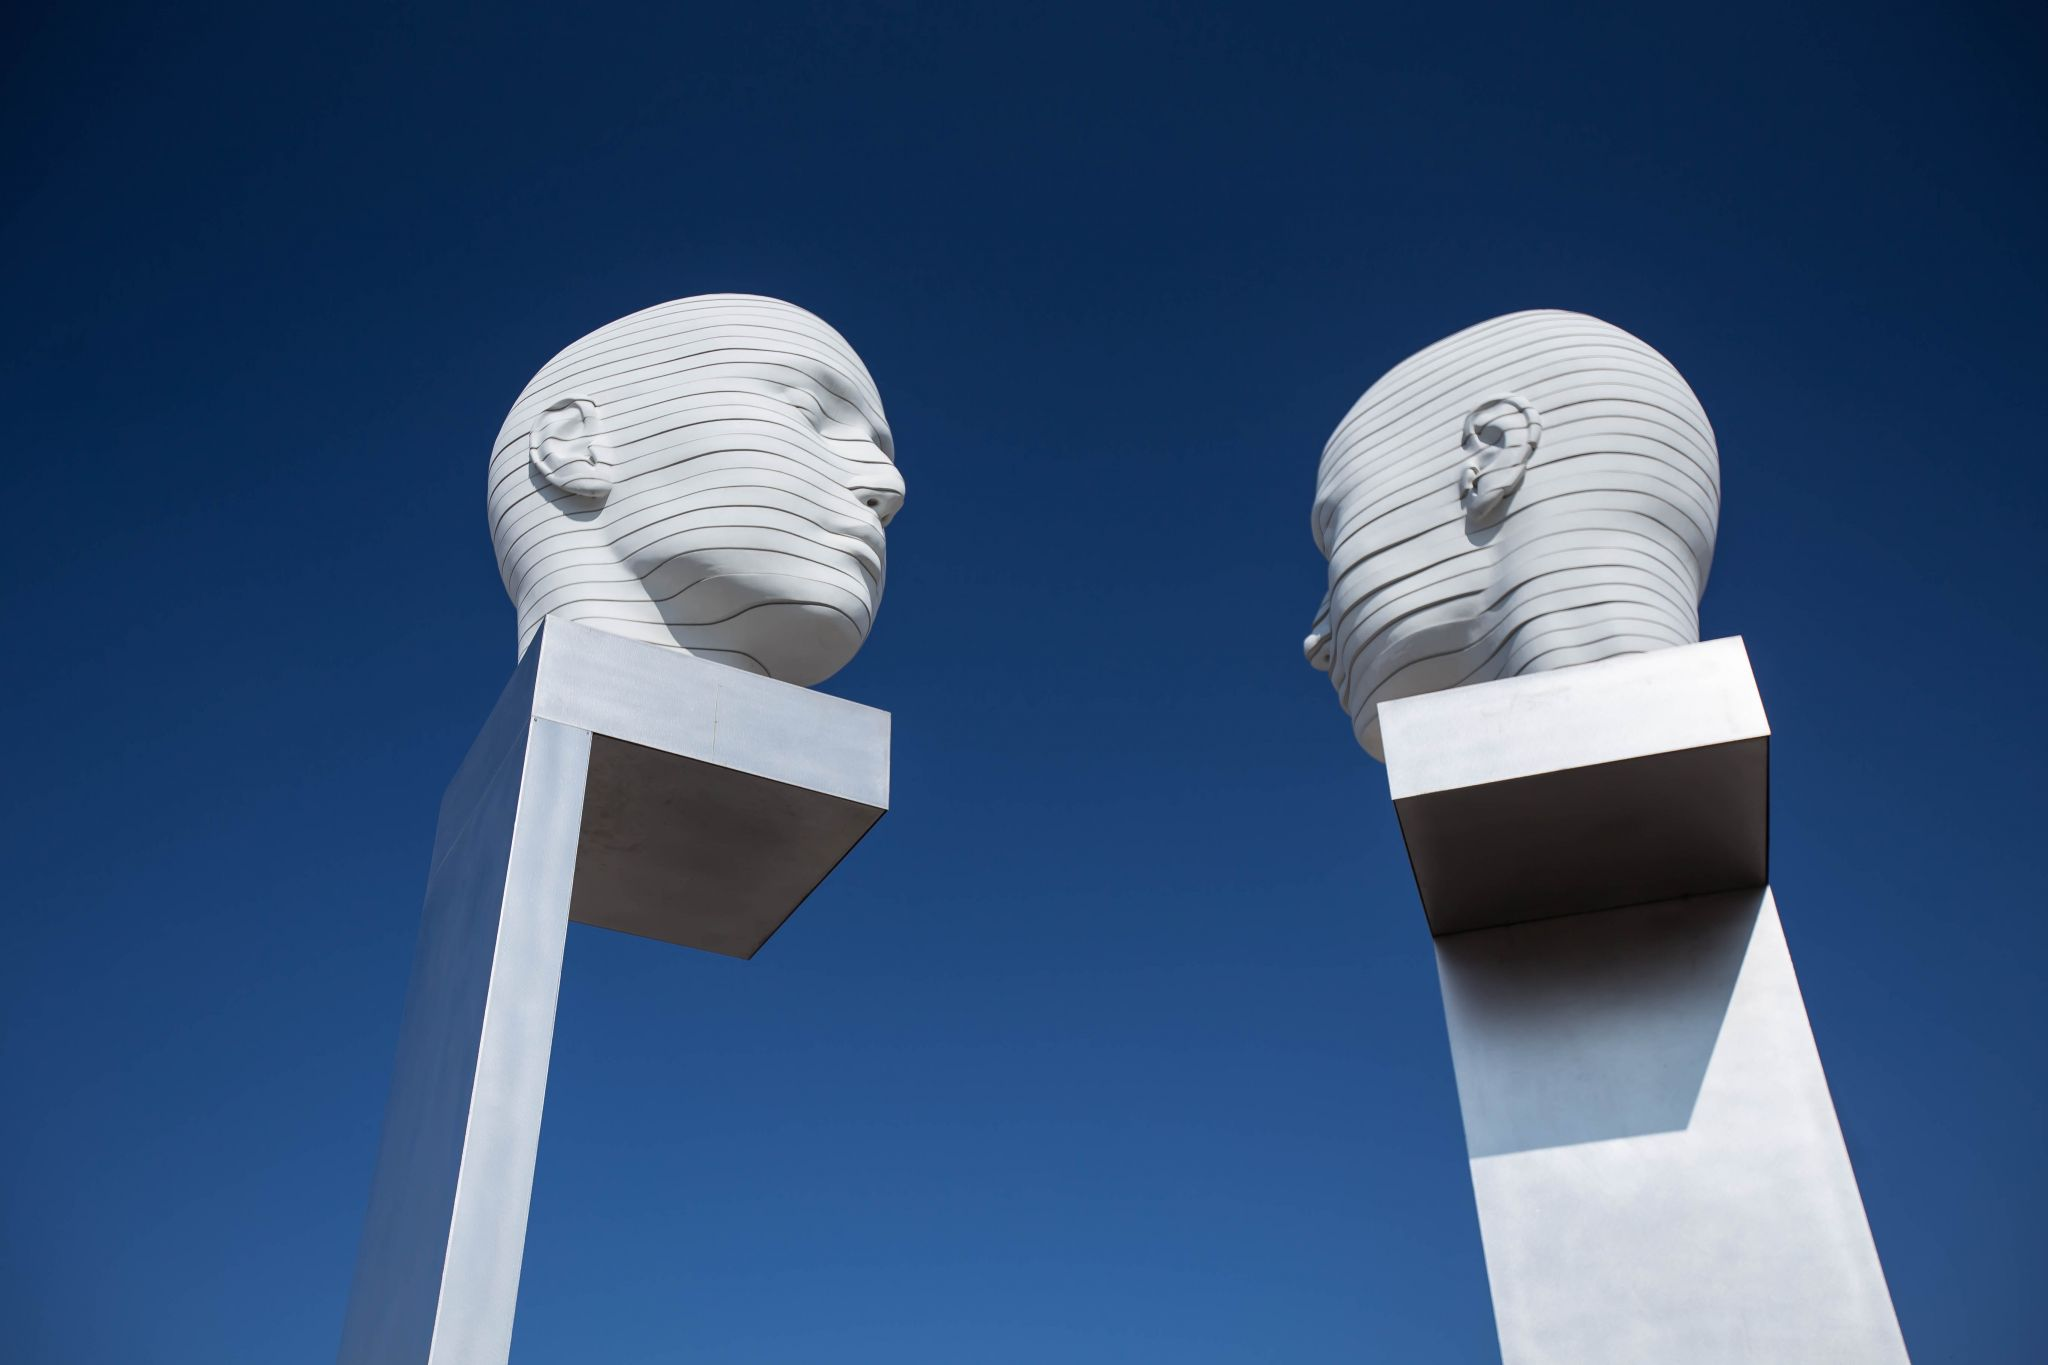 Heads of Adlershof, Germany